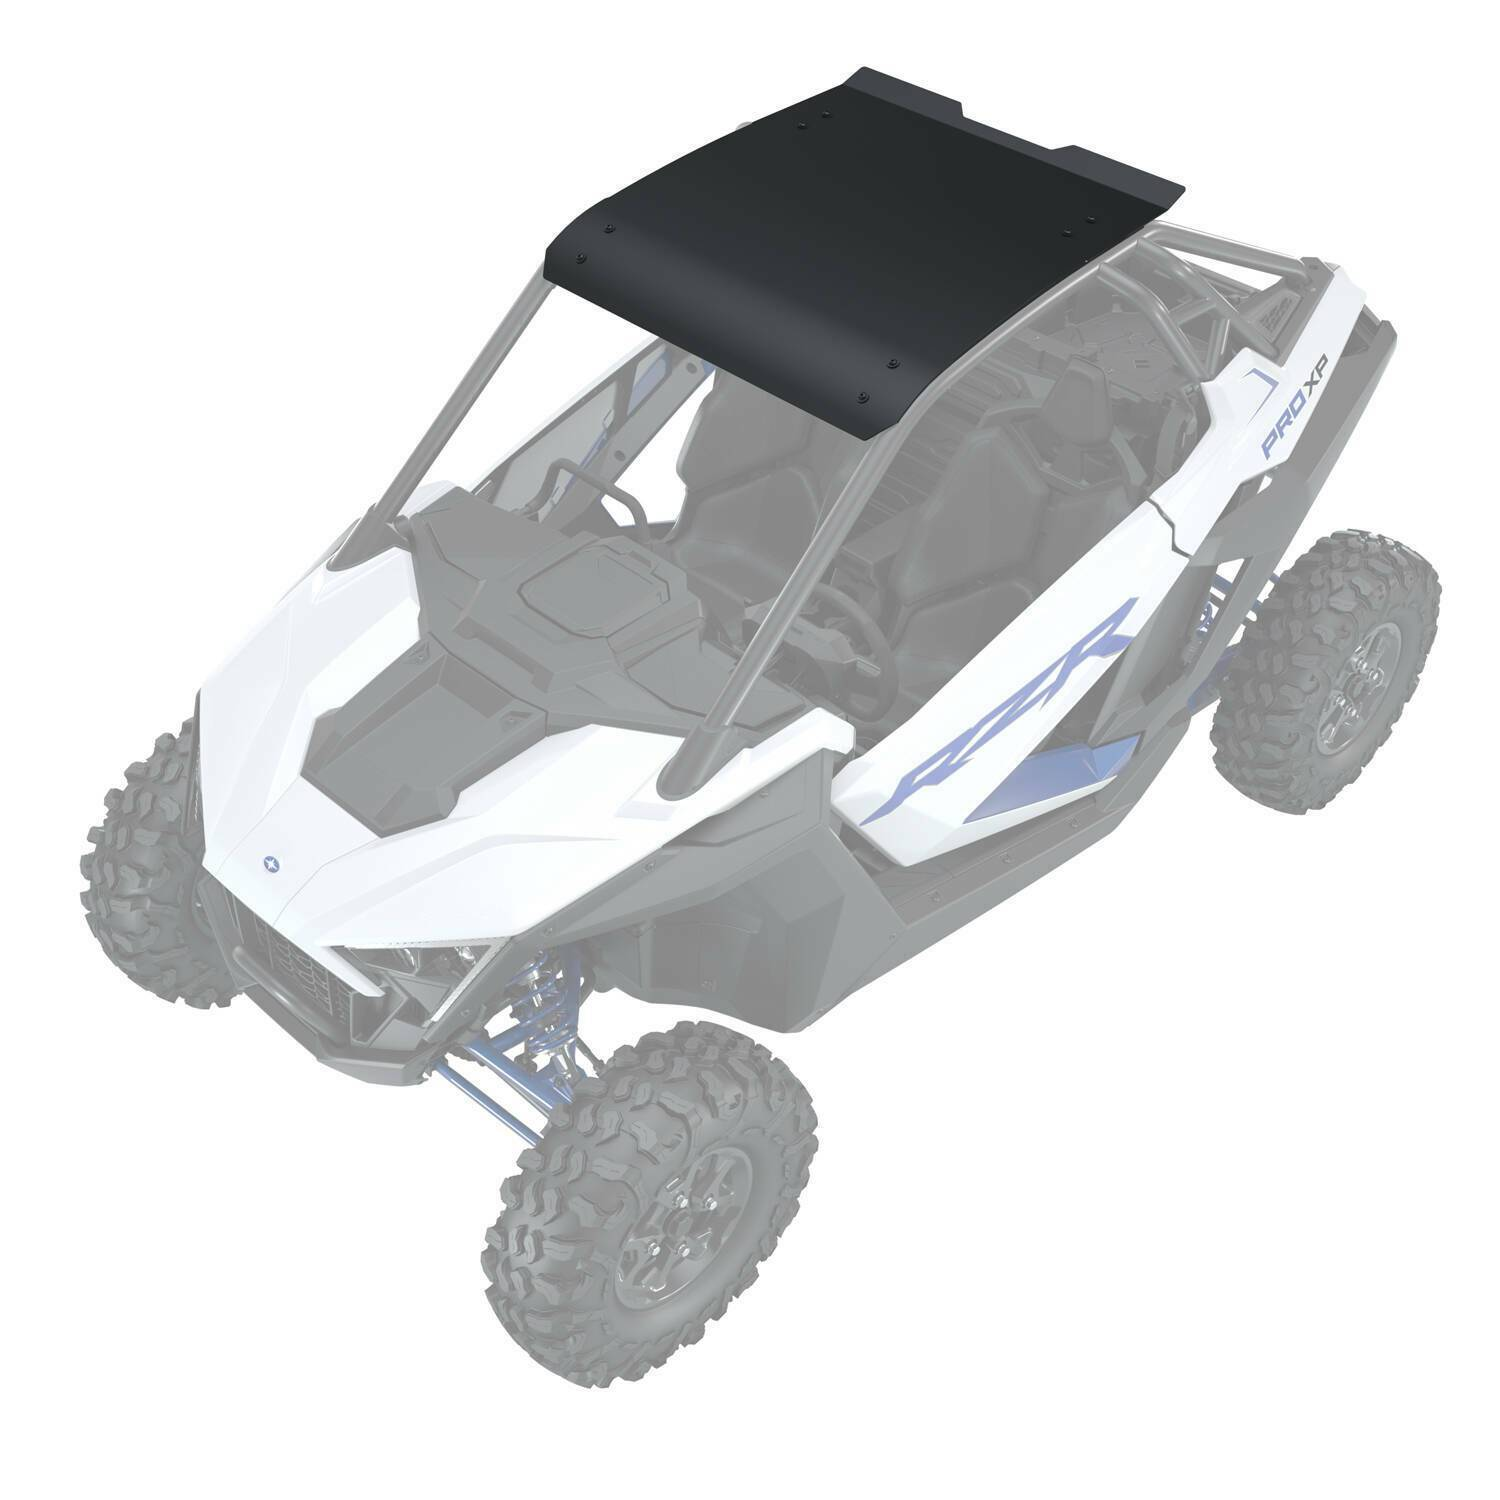 Polaris 2883743458 Matte Black ABS Plastic Roof 2020 Pro Premium Ultimate RZR XP aftermarket replacement Vehicles & Parts > Vehicles > Motor Vehicles > Off-Road and All-Terrain Vehicles > ATVs & UTVs Polaris